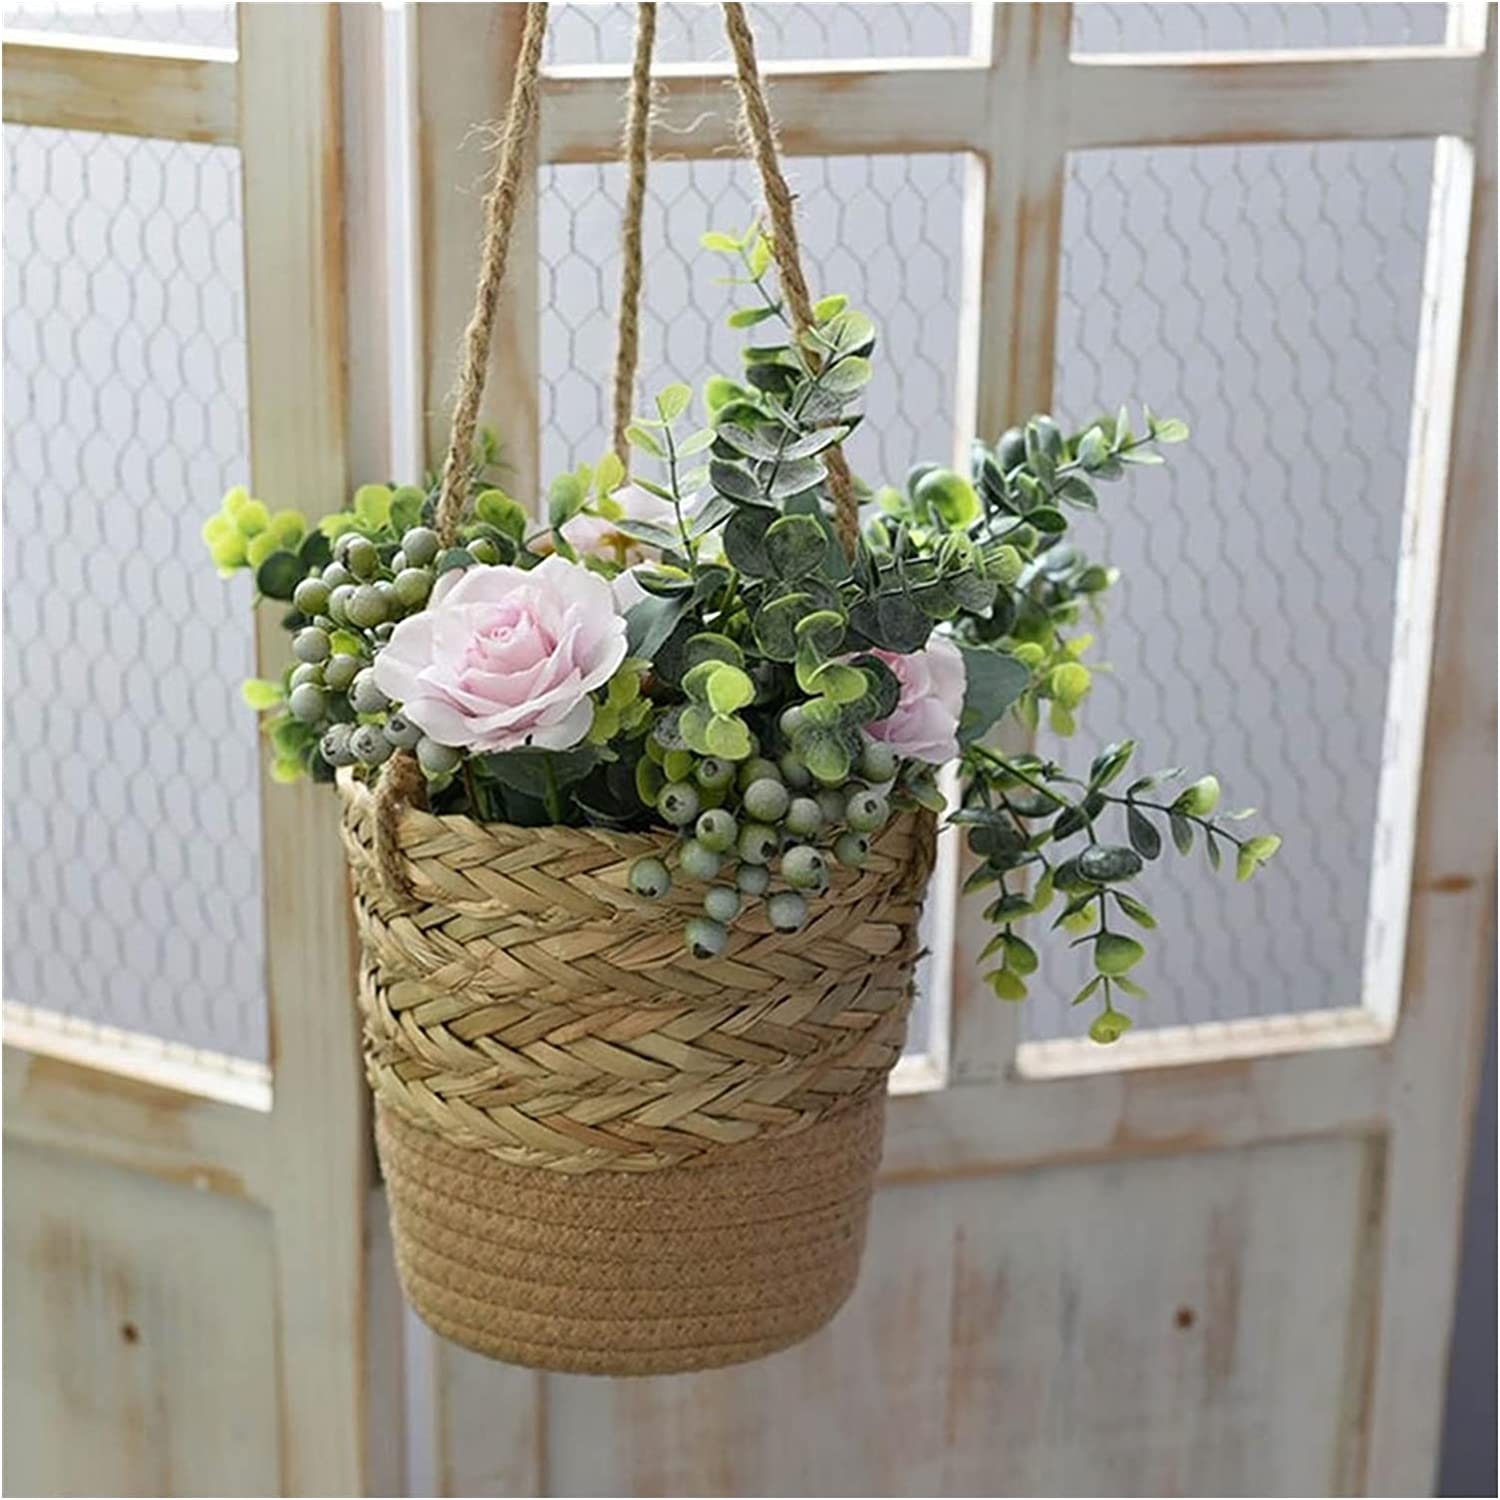 Hanging Flower Pots Planter Ranking TOP19 Basket Wall F Woven Max 63% OFF Handmade